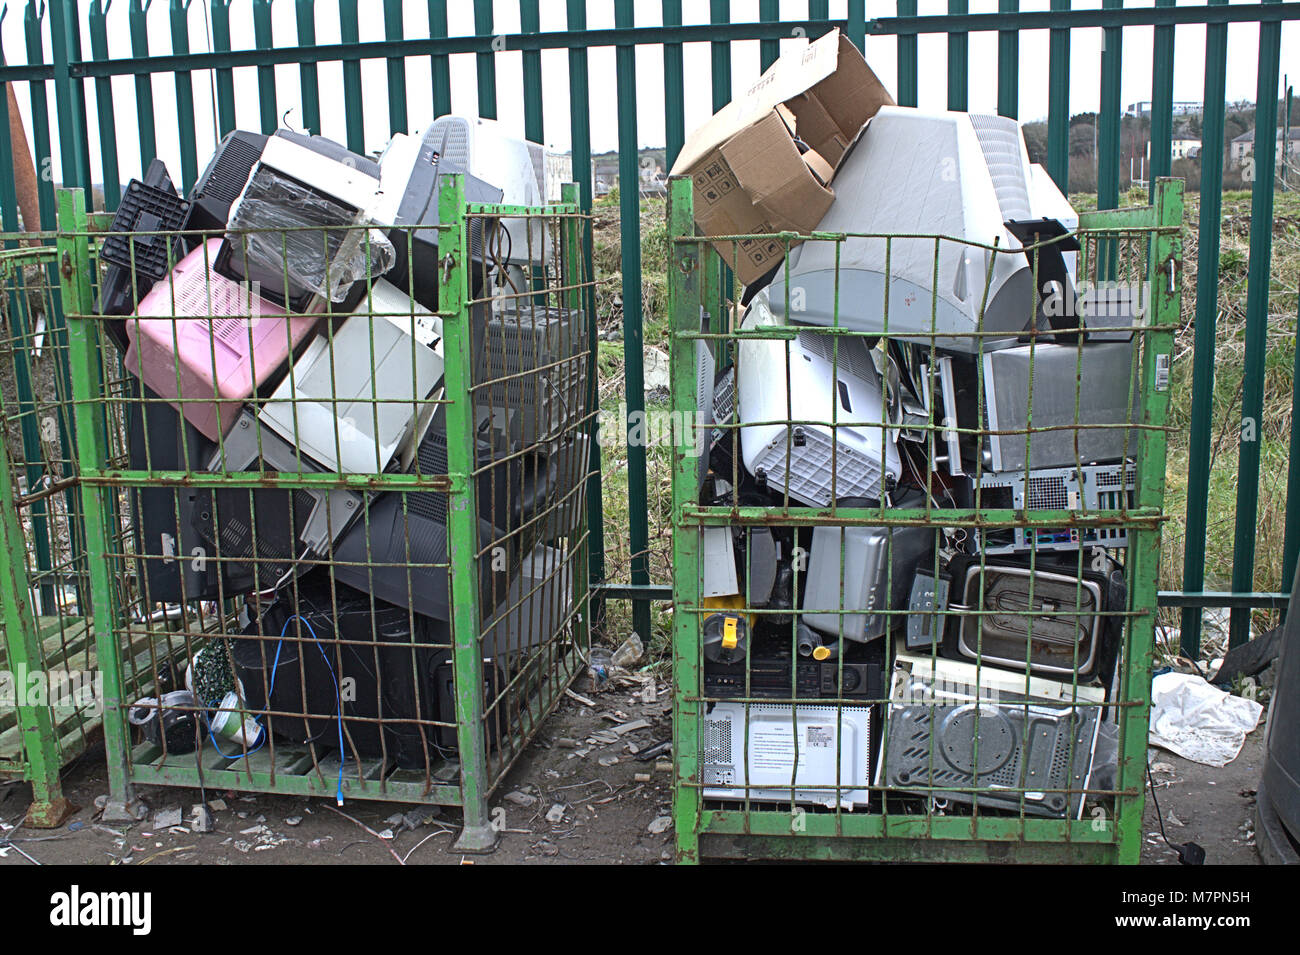 cage of redundant computer screens in a local dump in west cork, ireland - Stock Image